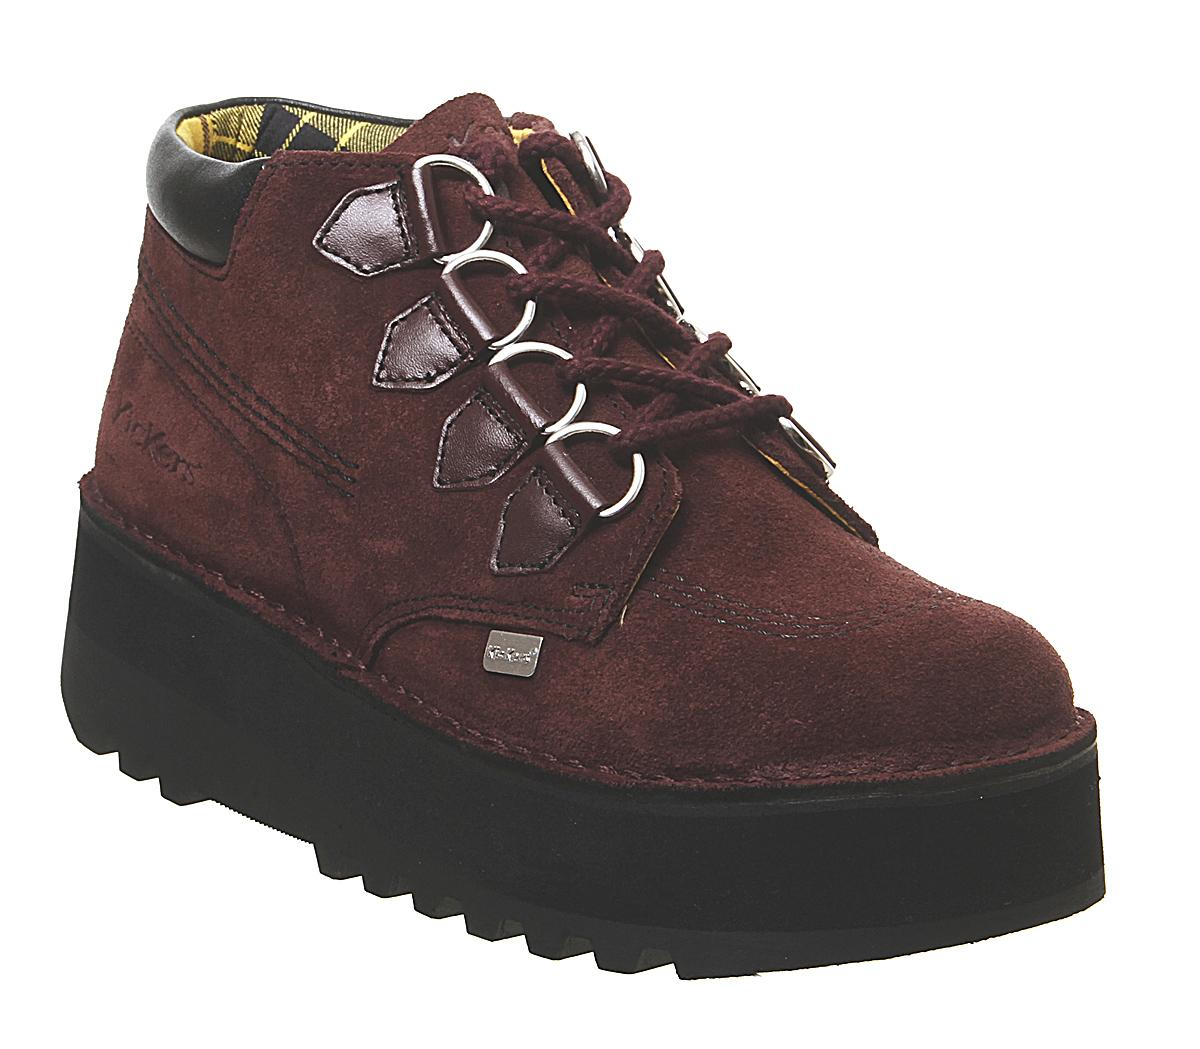 Womens Kickers Kick Hi Creepy Burgundy